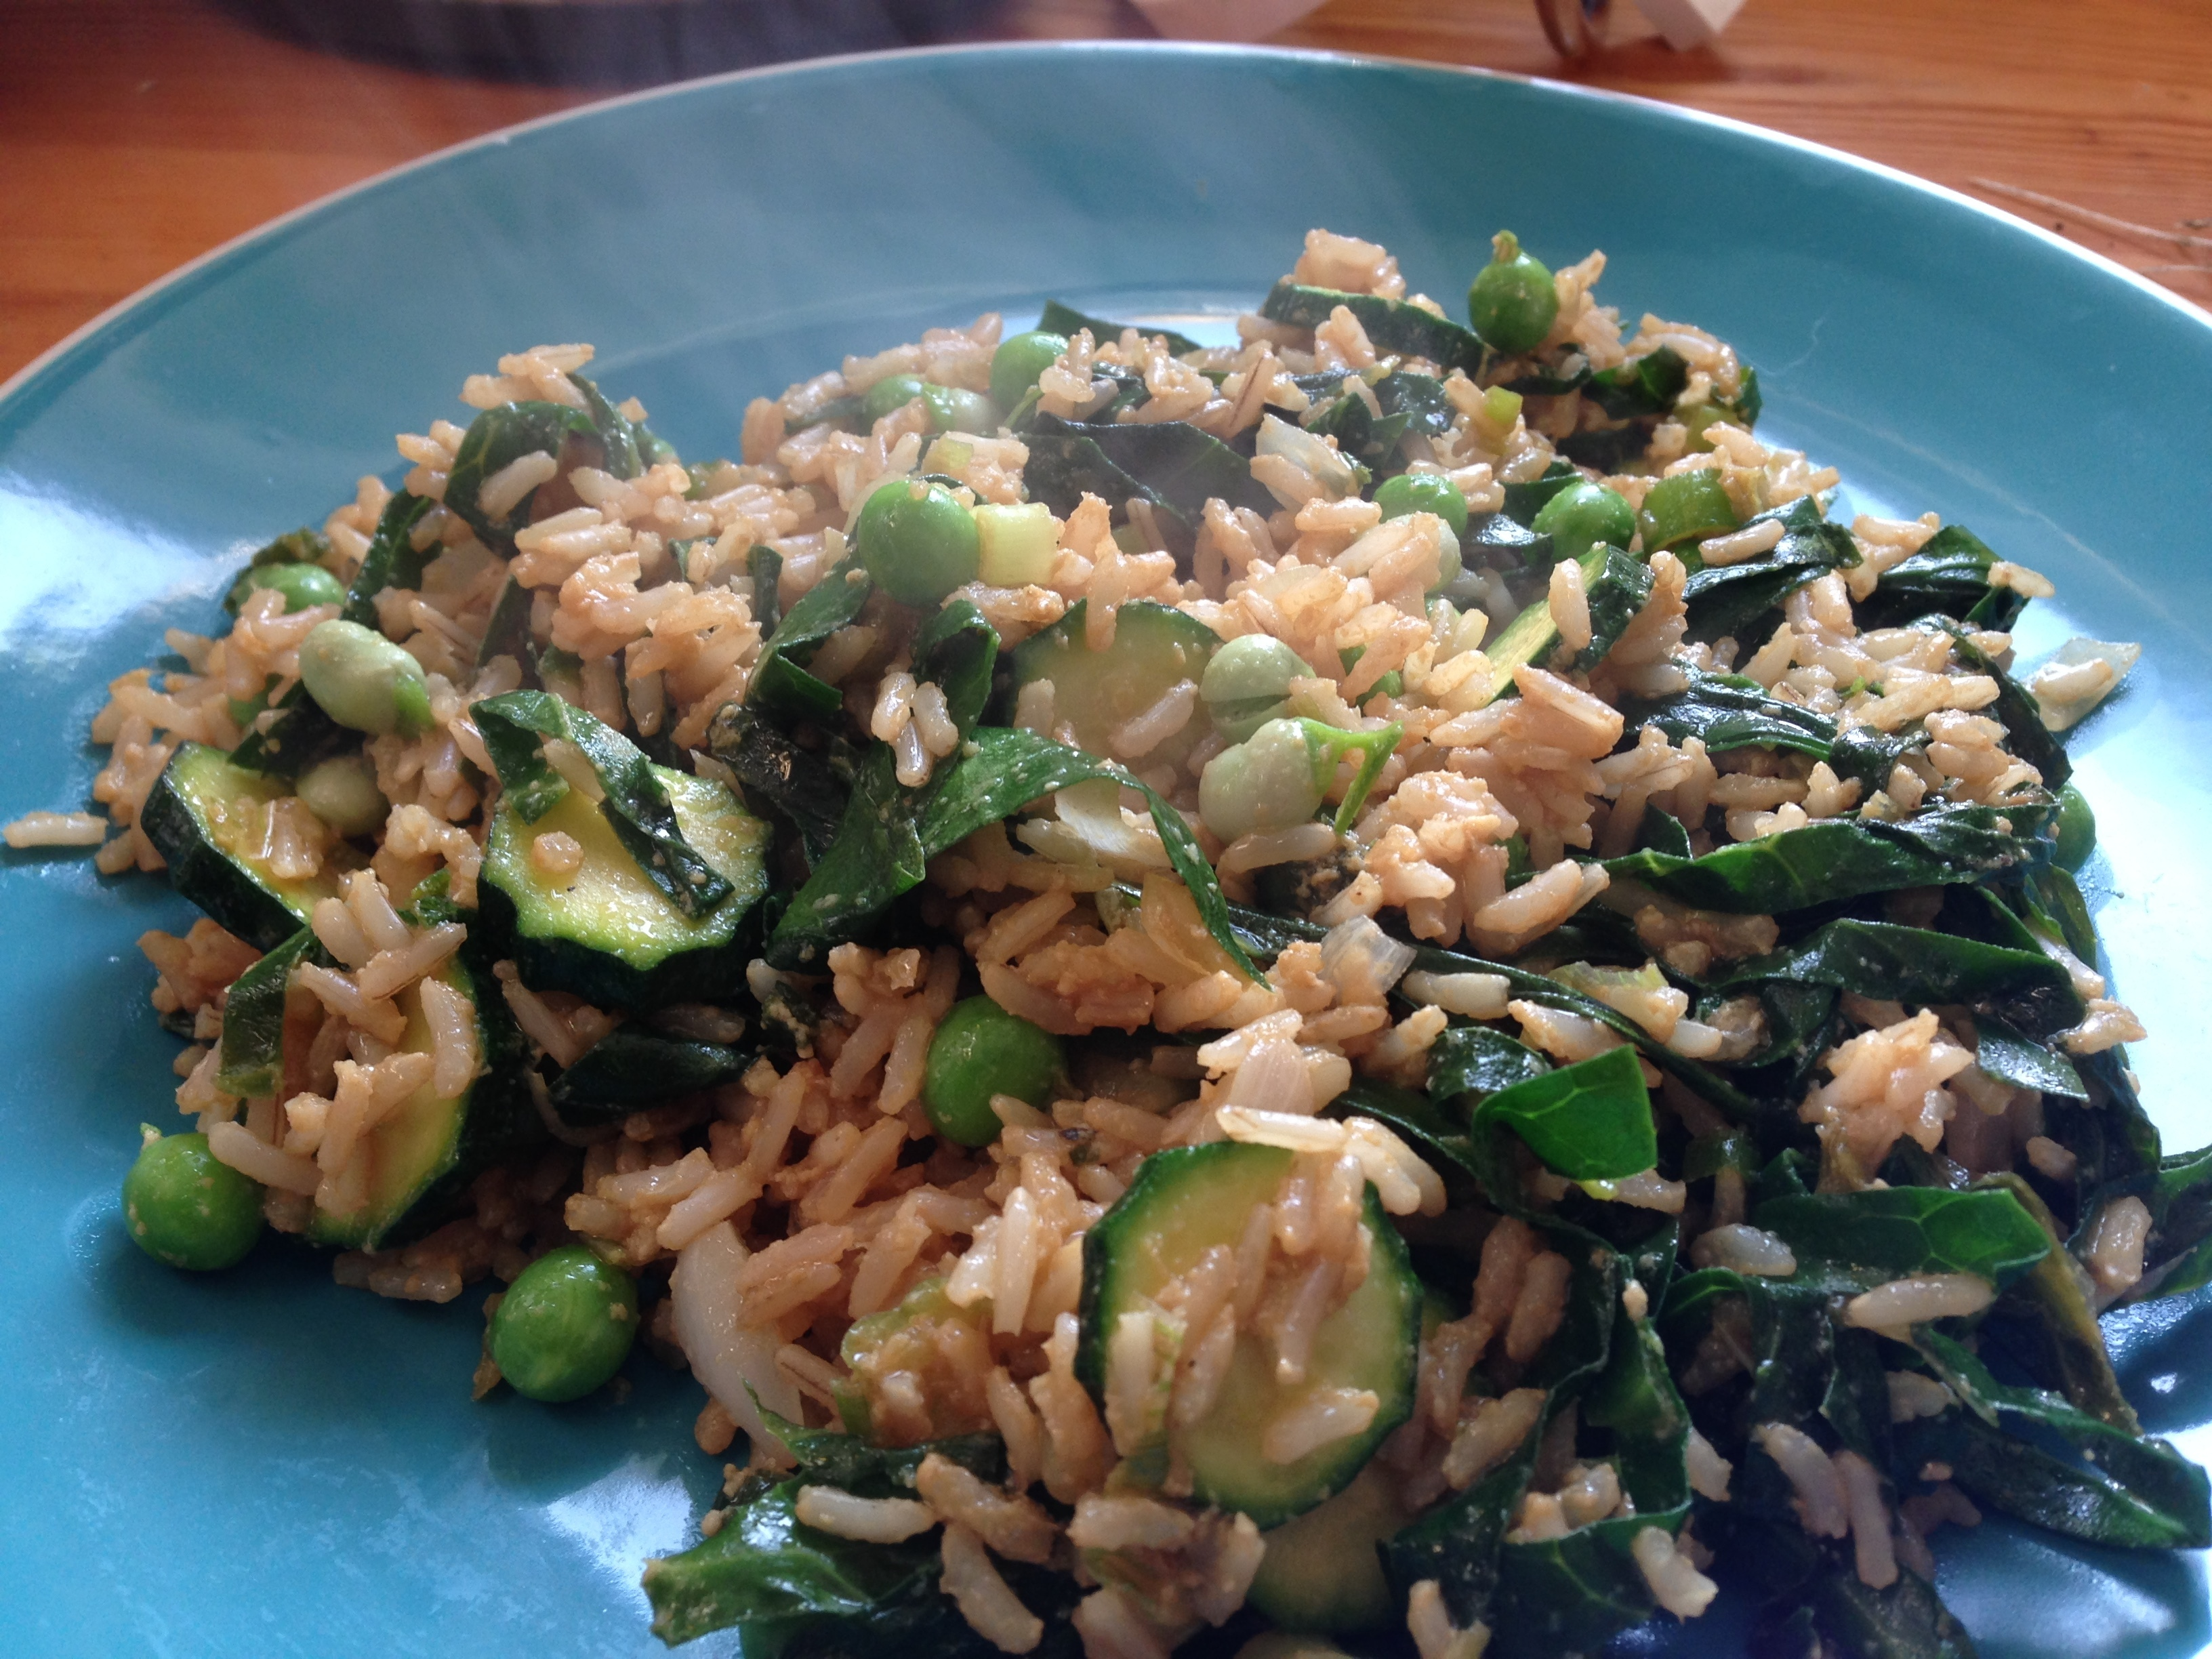 Stir Fried Brown Rice With Garden Veg